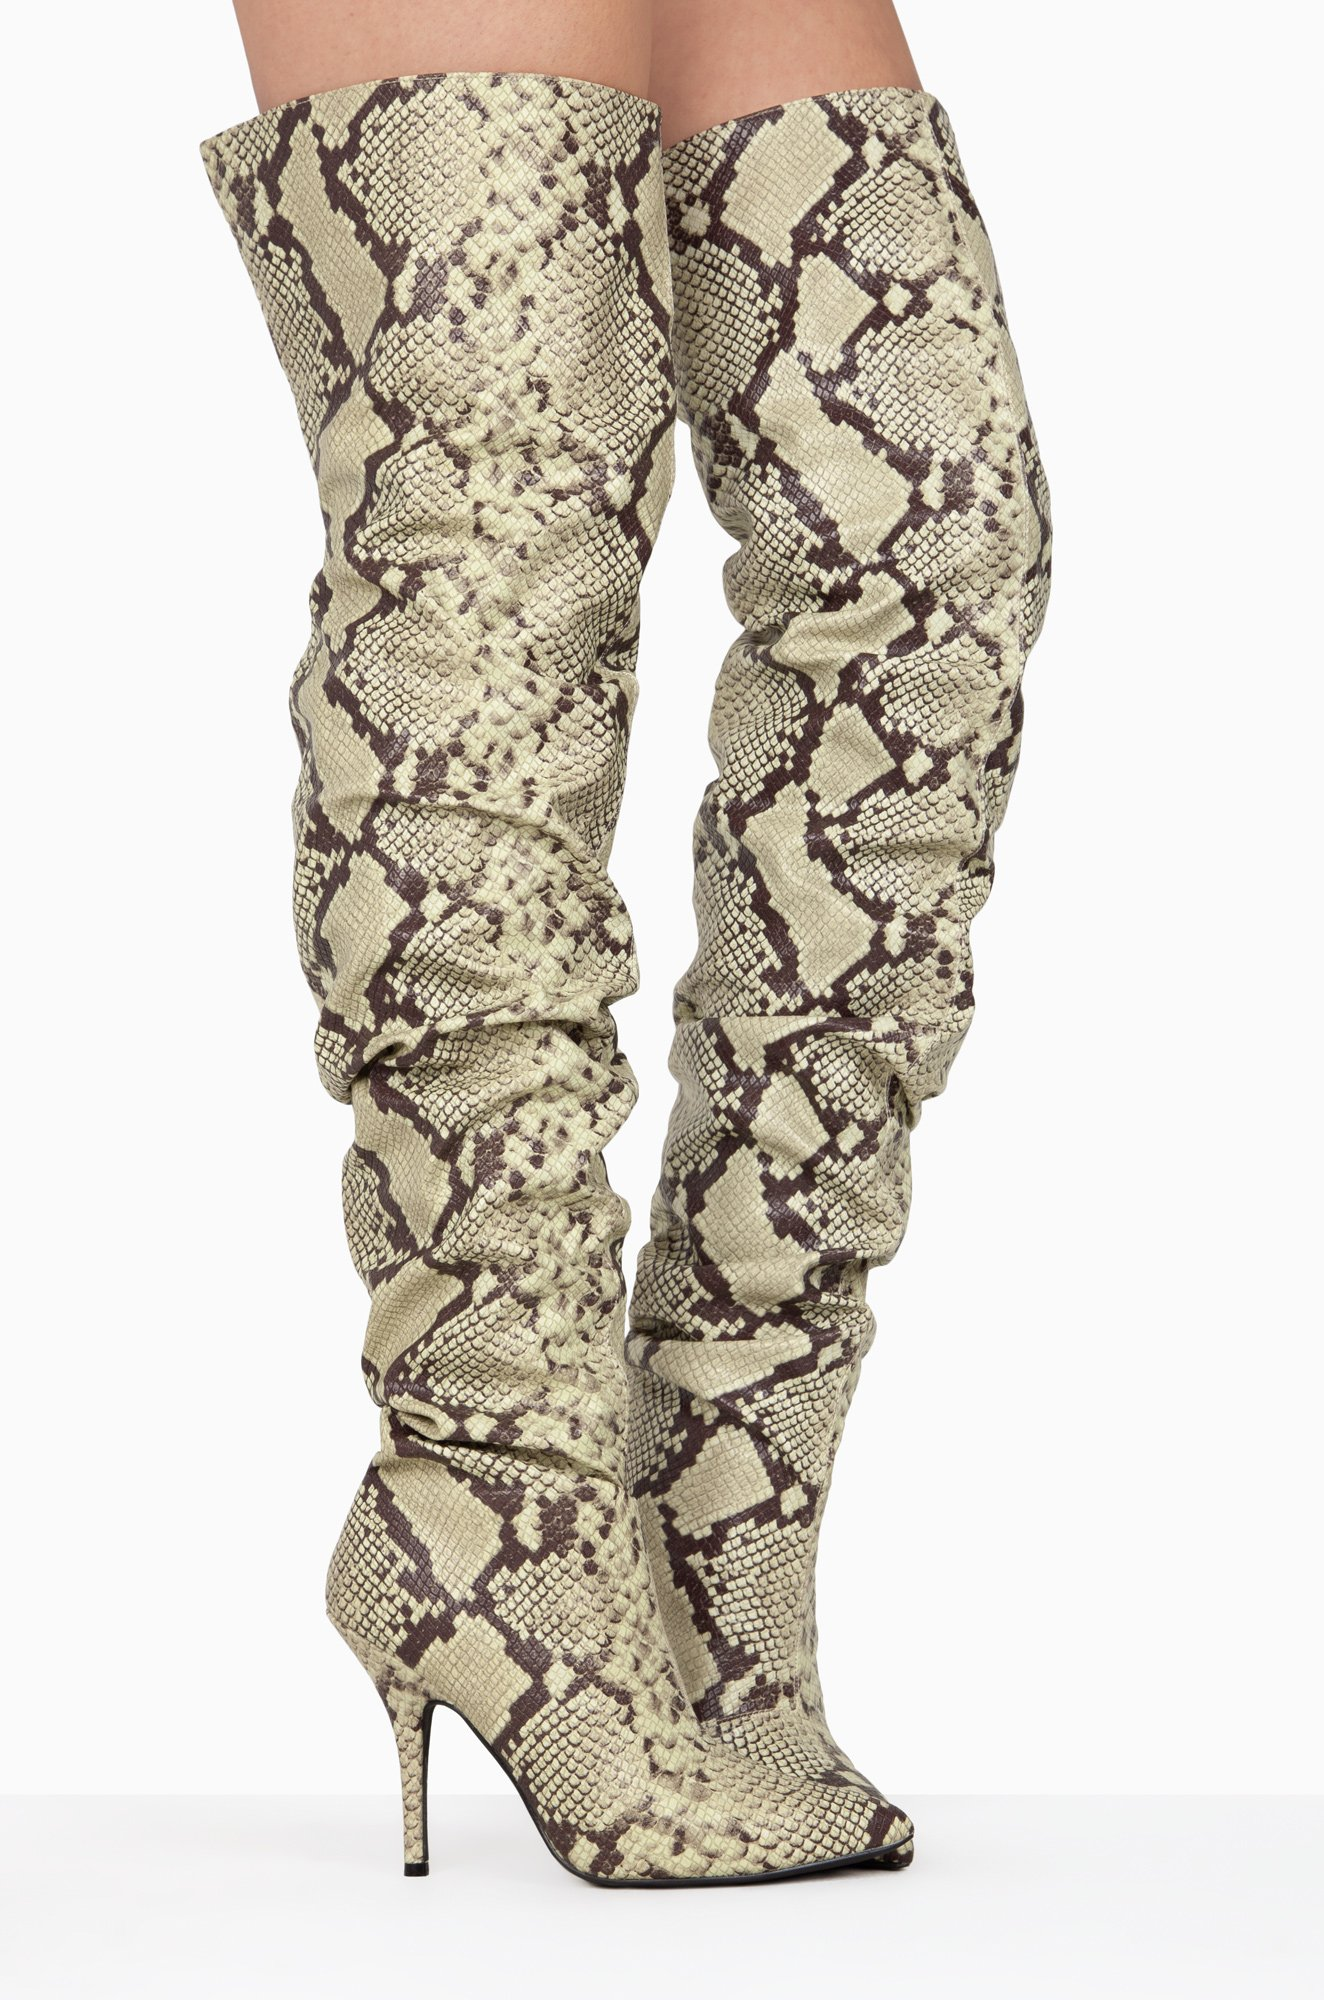 Cape-Robbin-Bown-Snake-Thigh-High-Slouch-Pointed-Toe-Over-The-Knee-Stiletto-Boot thumbnail 31